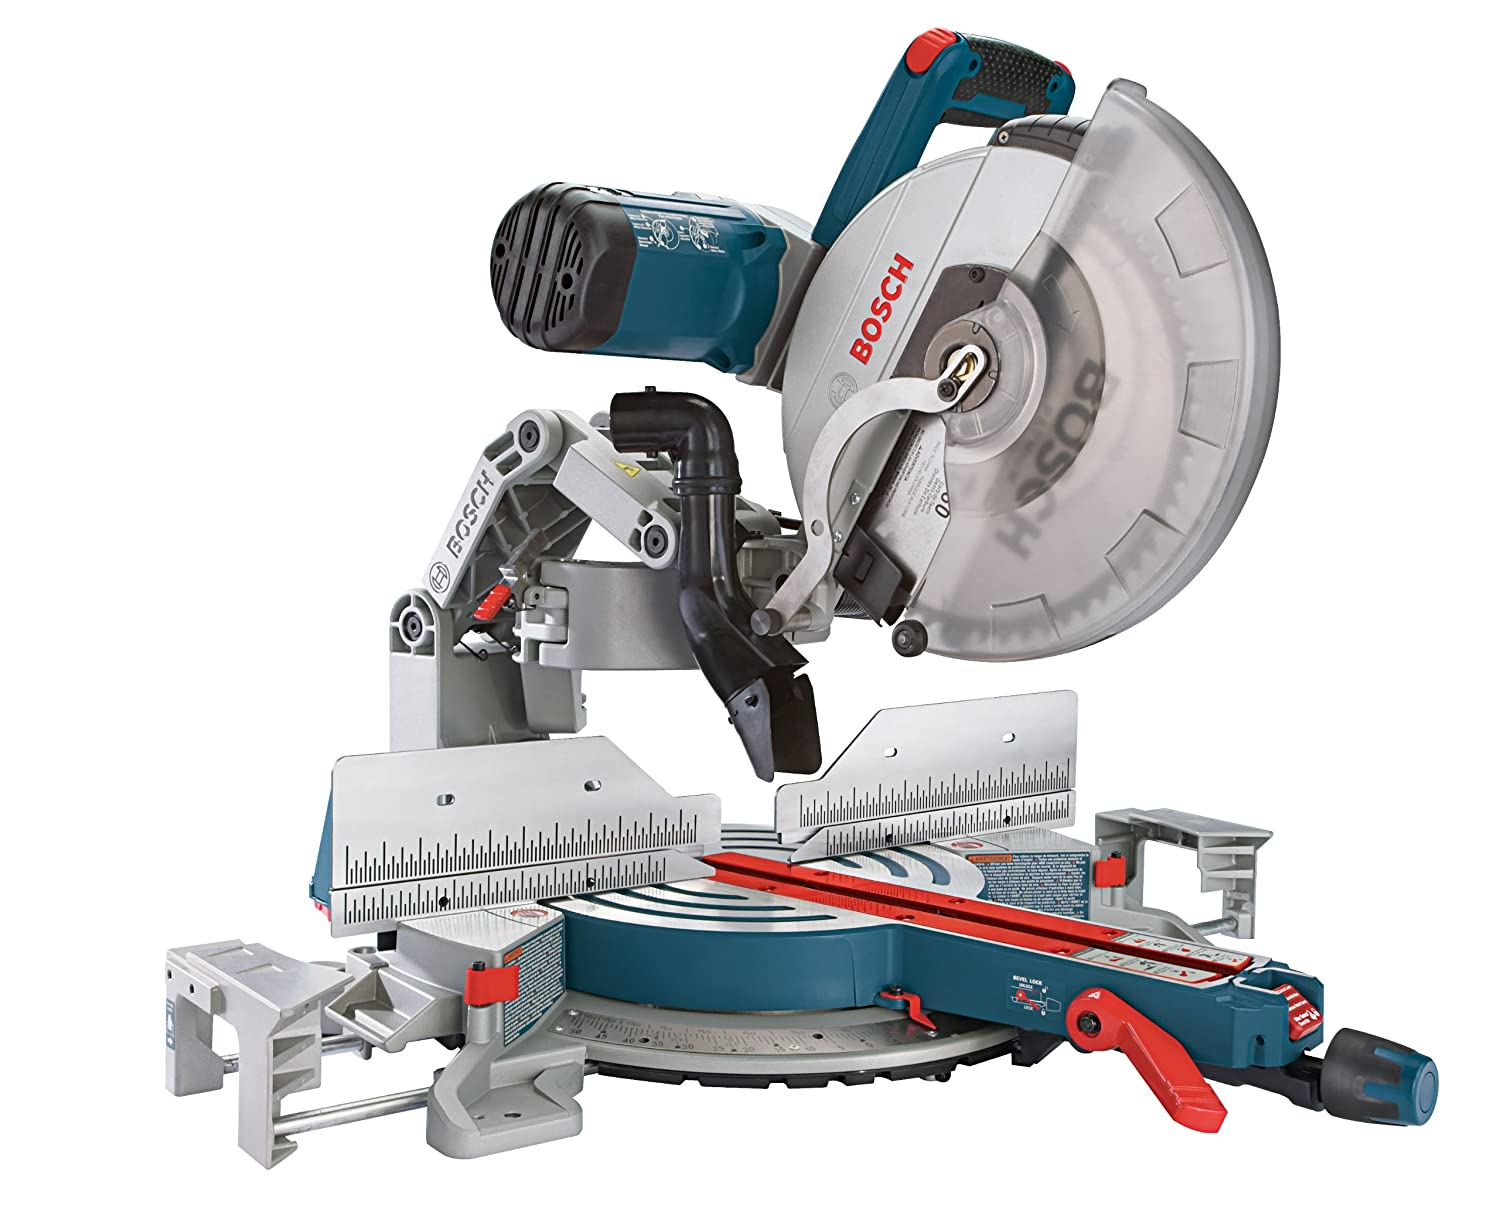 The Best Compound Miter Saw 2